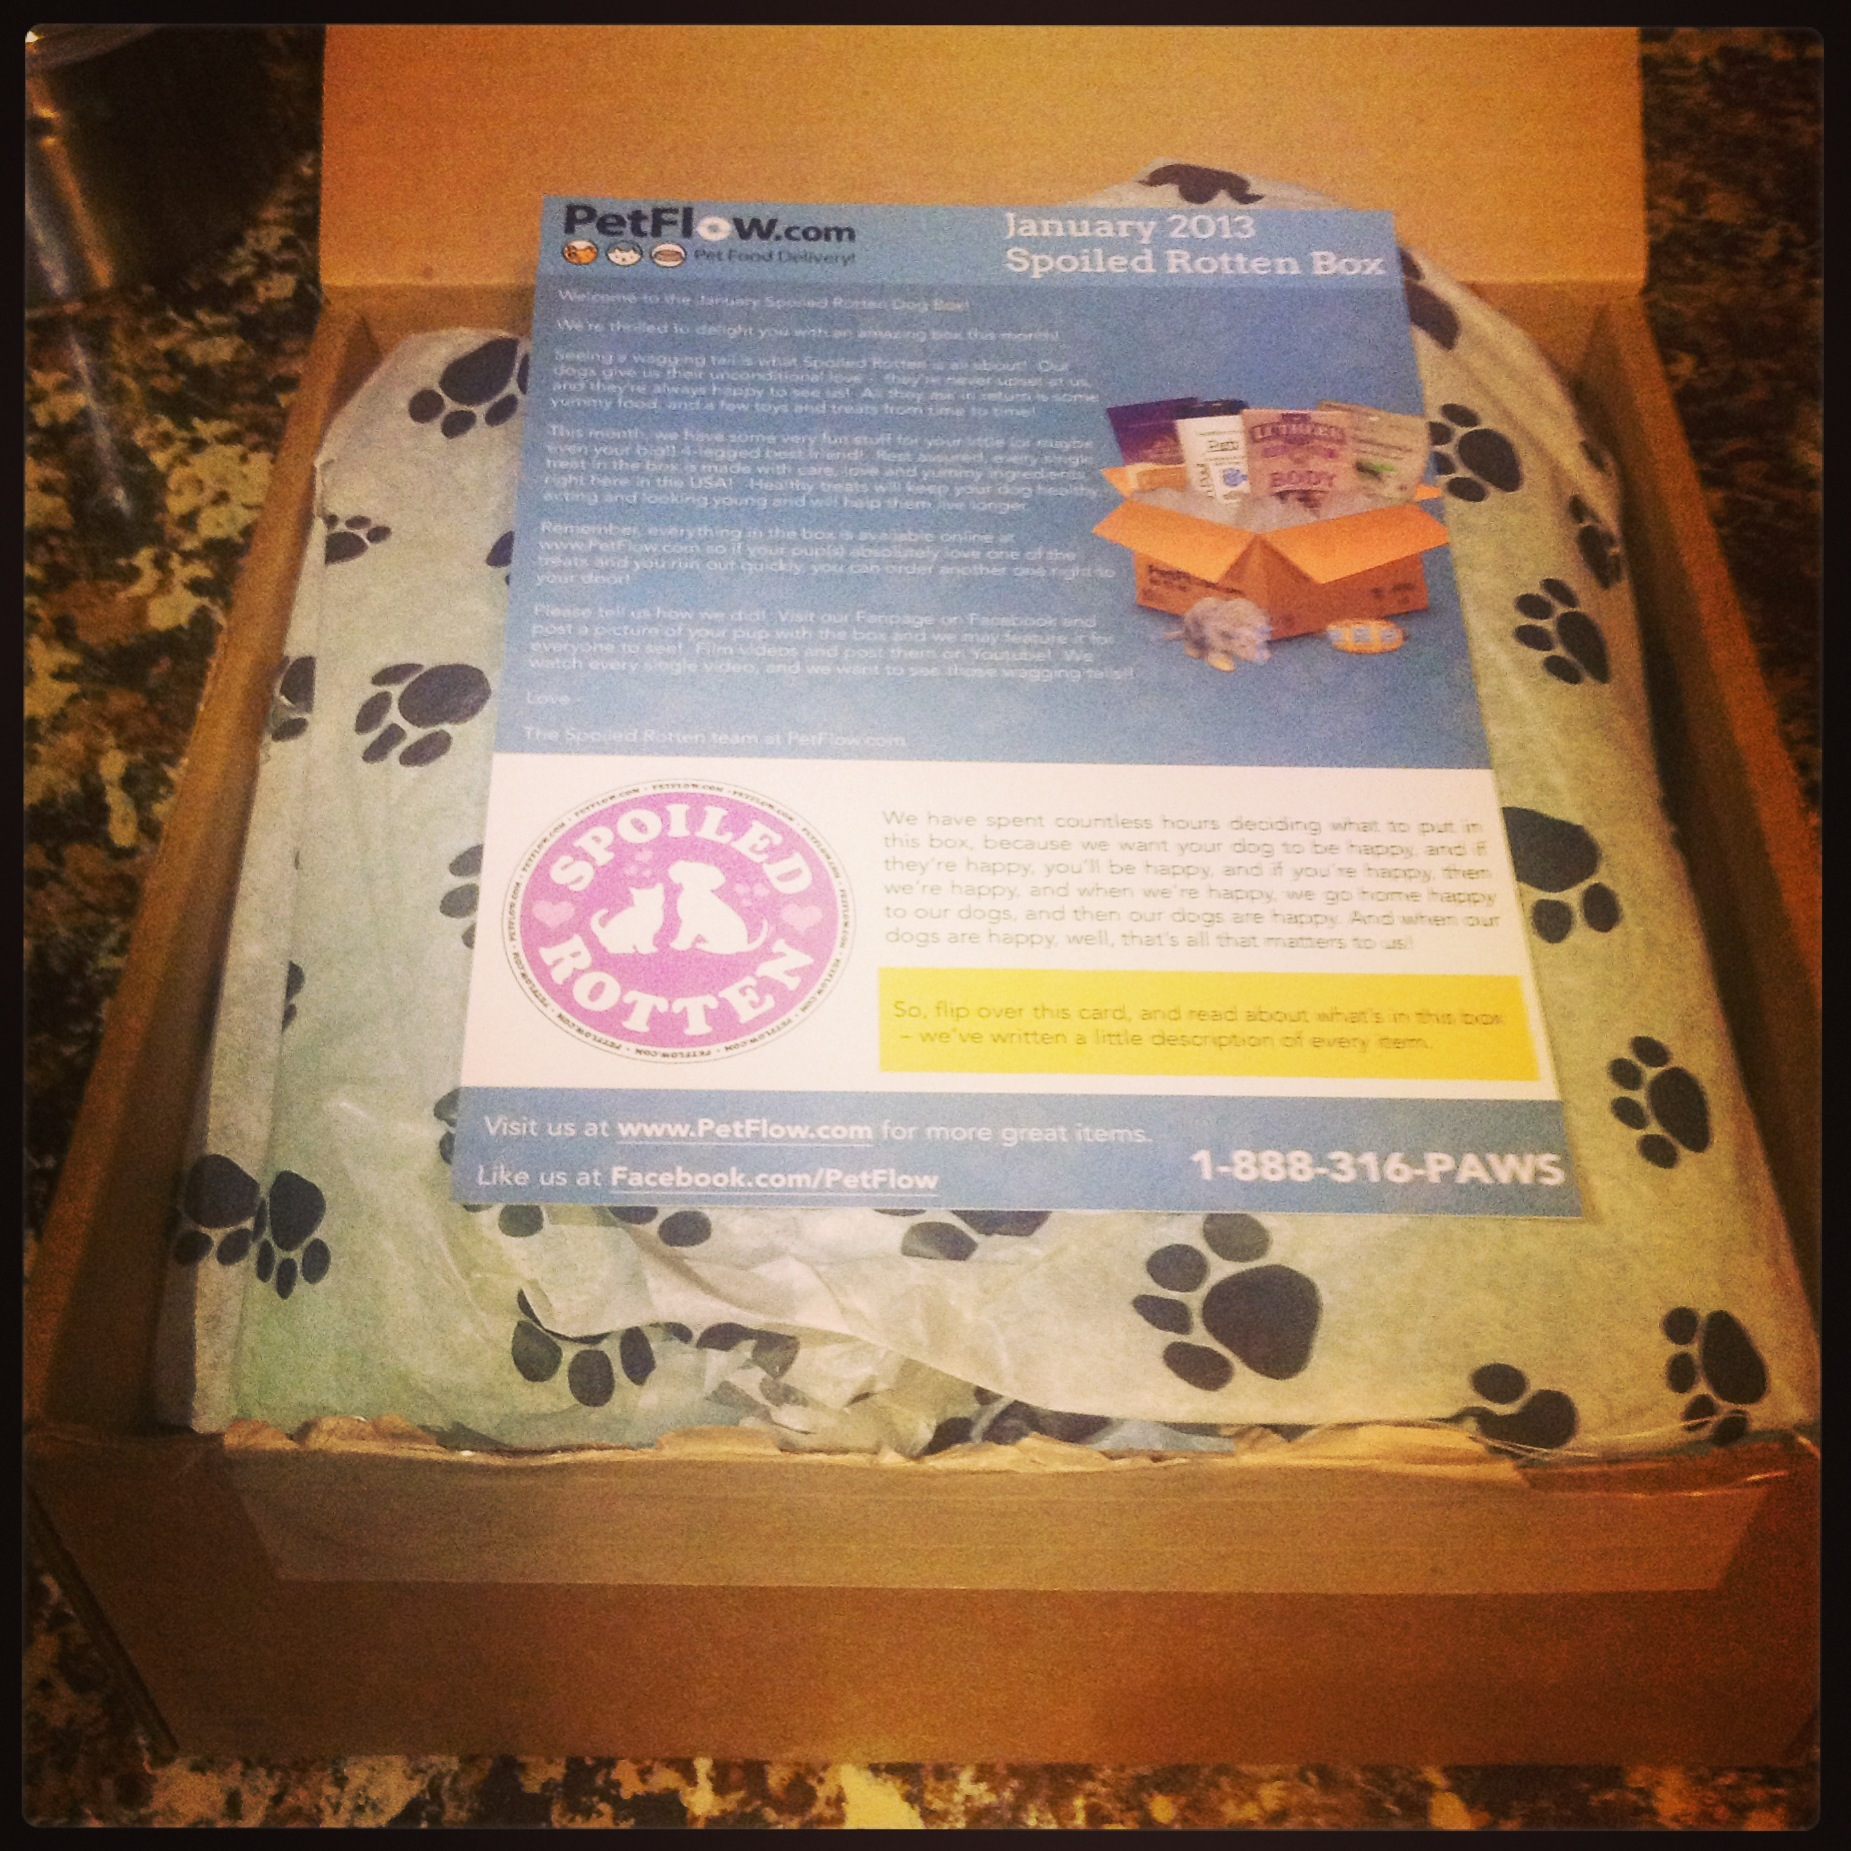 Spoiled Rotten Box for Dogs